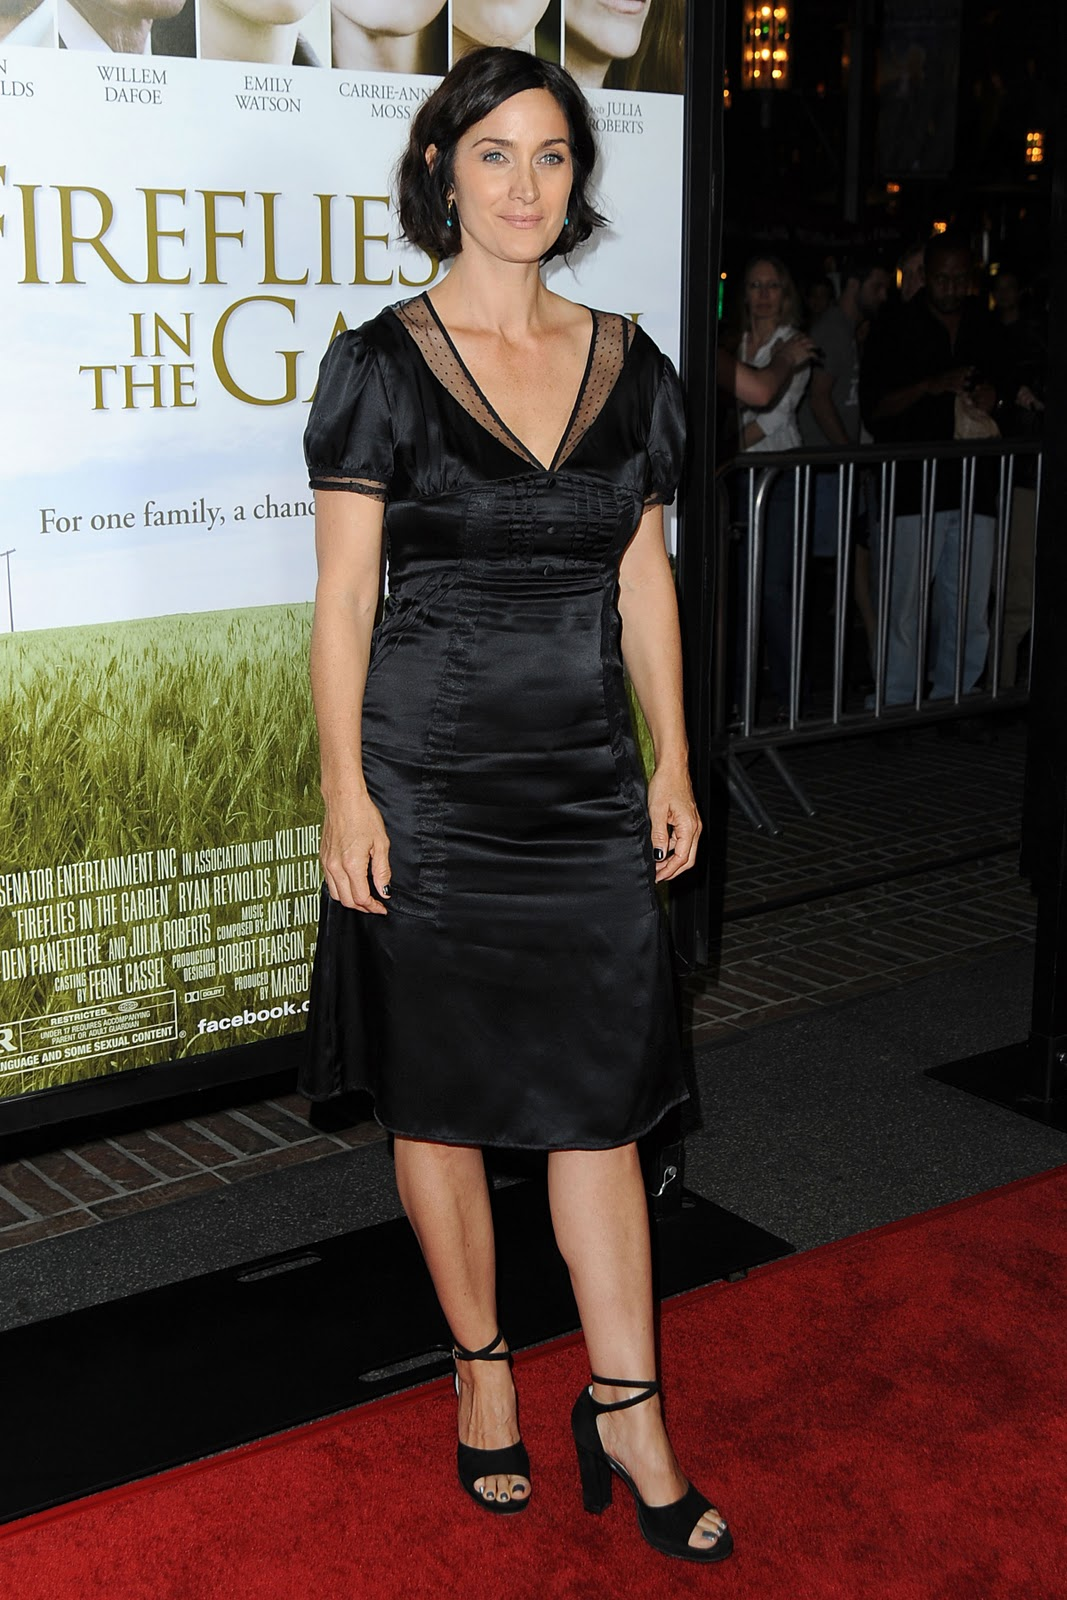 Carrie-Anne Moss August 21, 1967 (age 44)